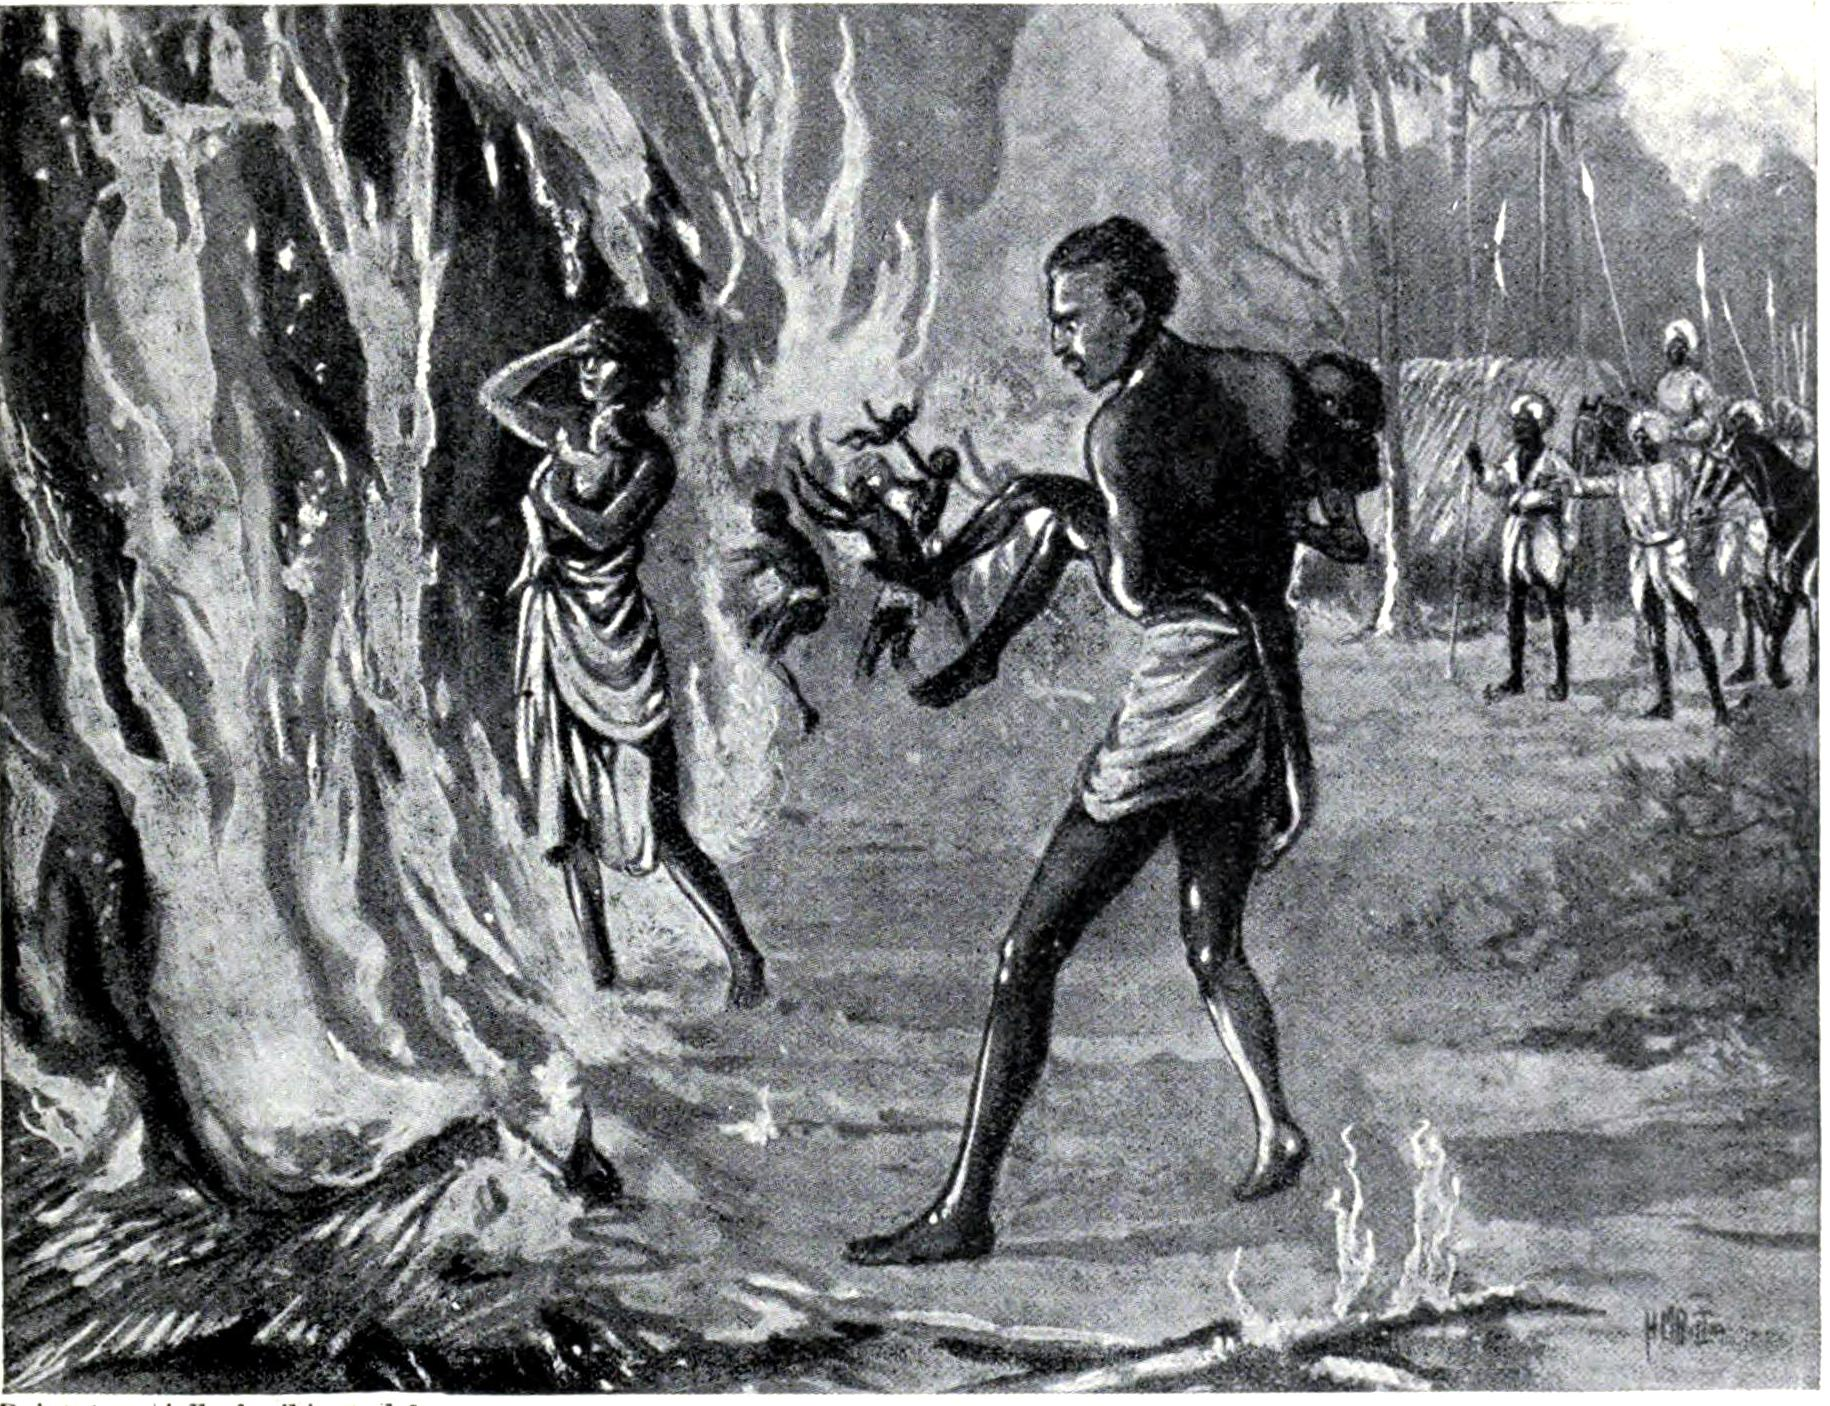 Villagers burn themselves to avoid the Pindari forces. (Credit: Wikimedia Commons)